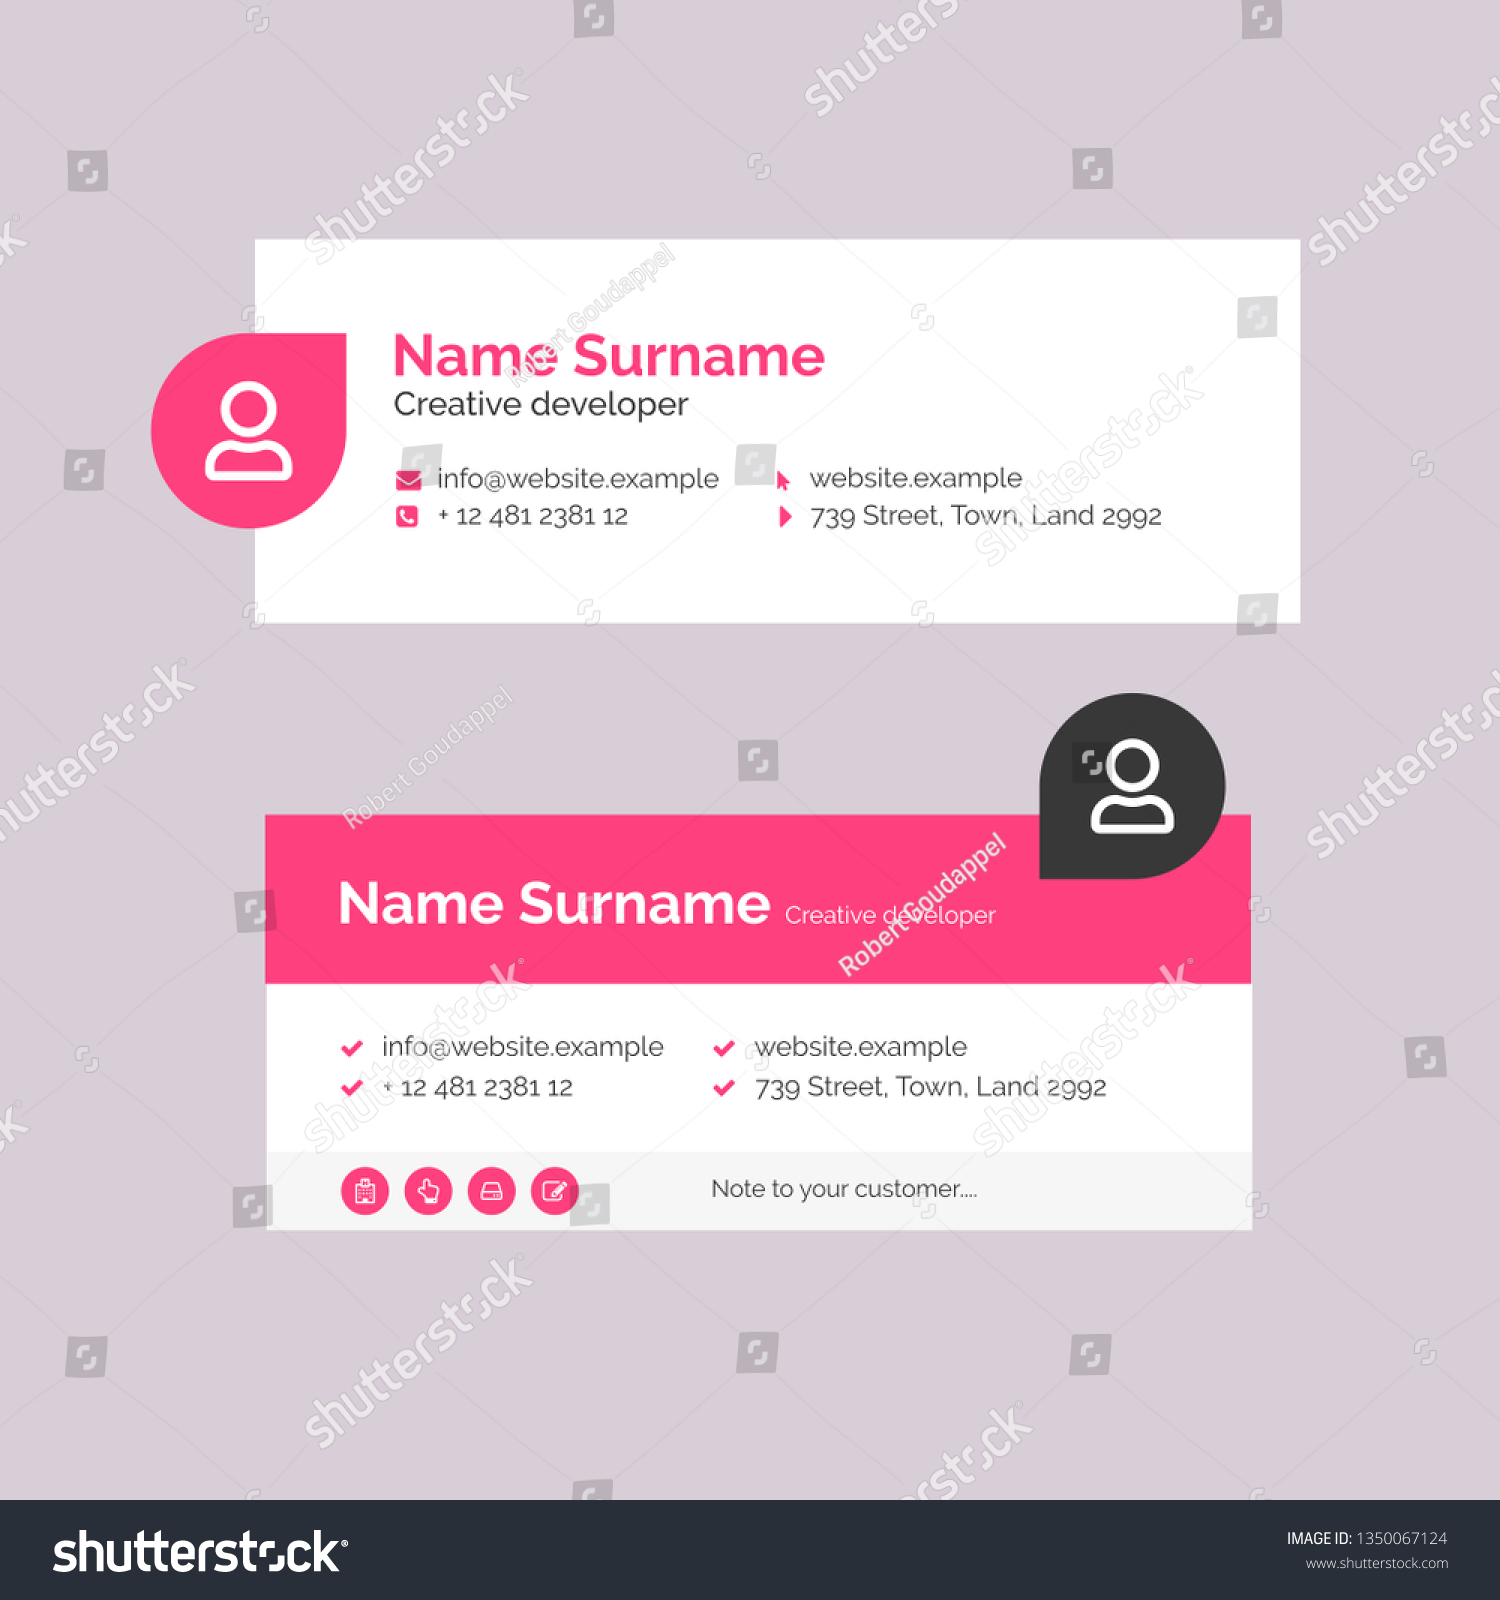 Vector Illustration Corporate Email Signature Design Stock Vector Royalty Free 1350067124